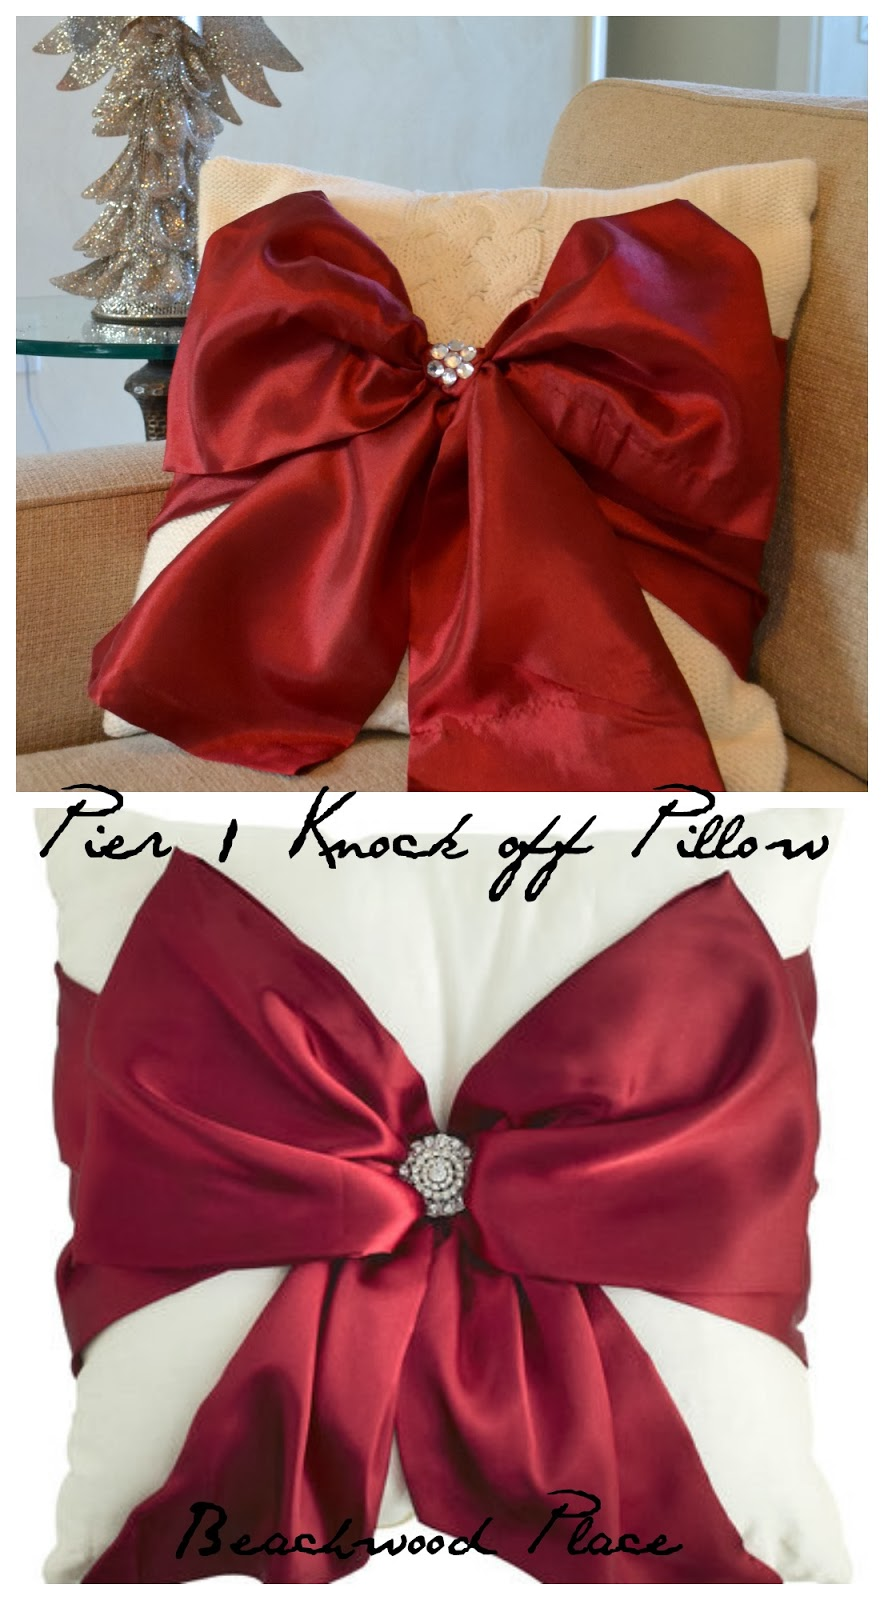 Beachwood Place: Diy Pier 1 Knock off Red Bow Pillow